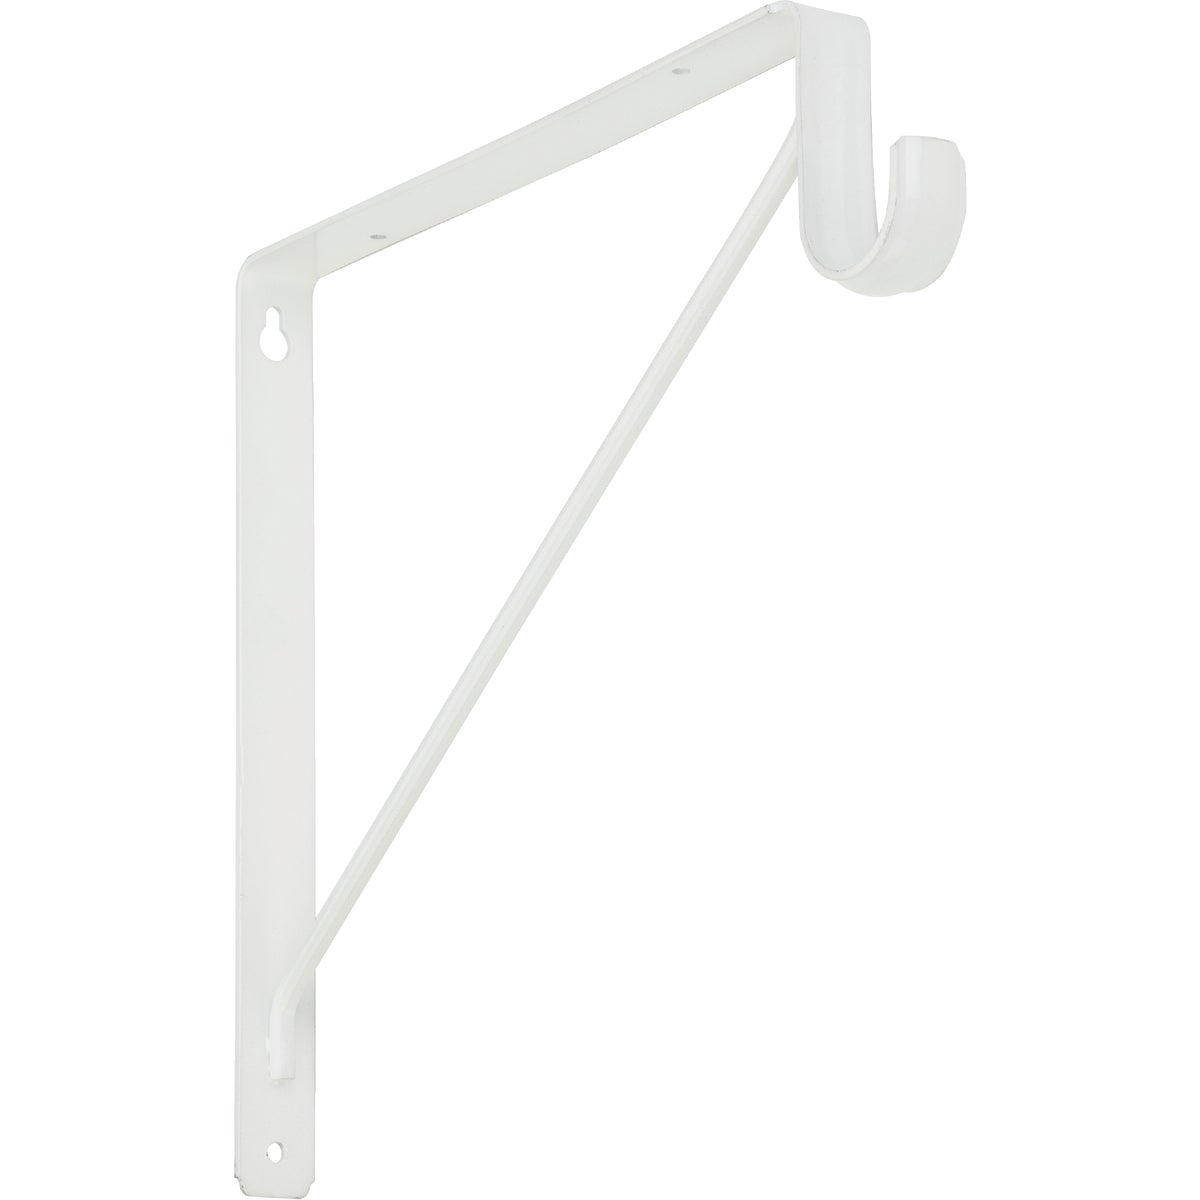 WHT SHELF & ROD BRACKET